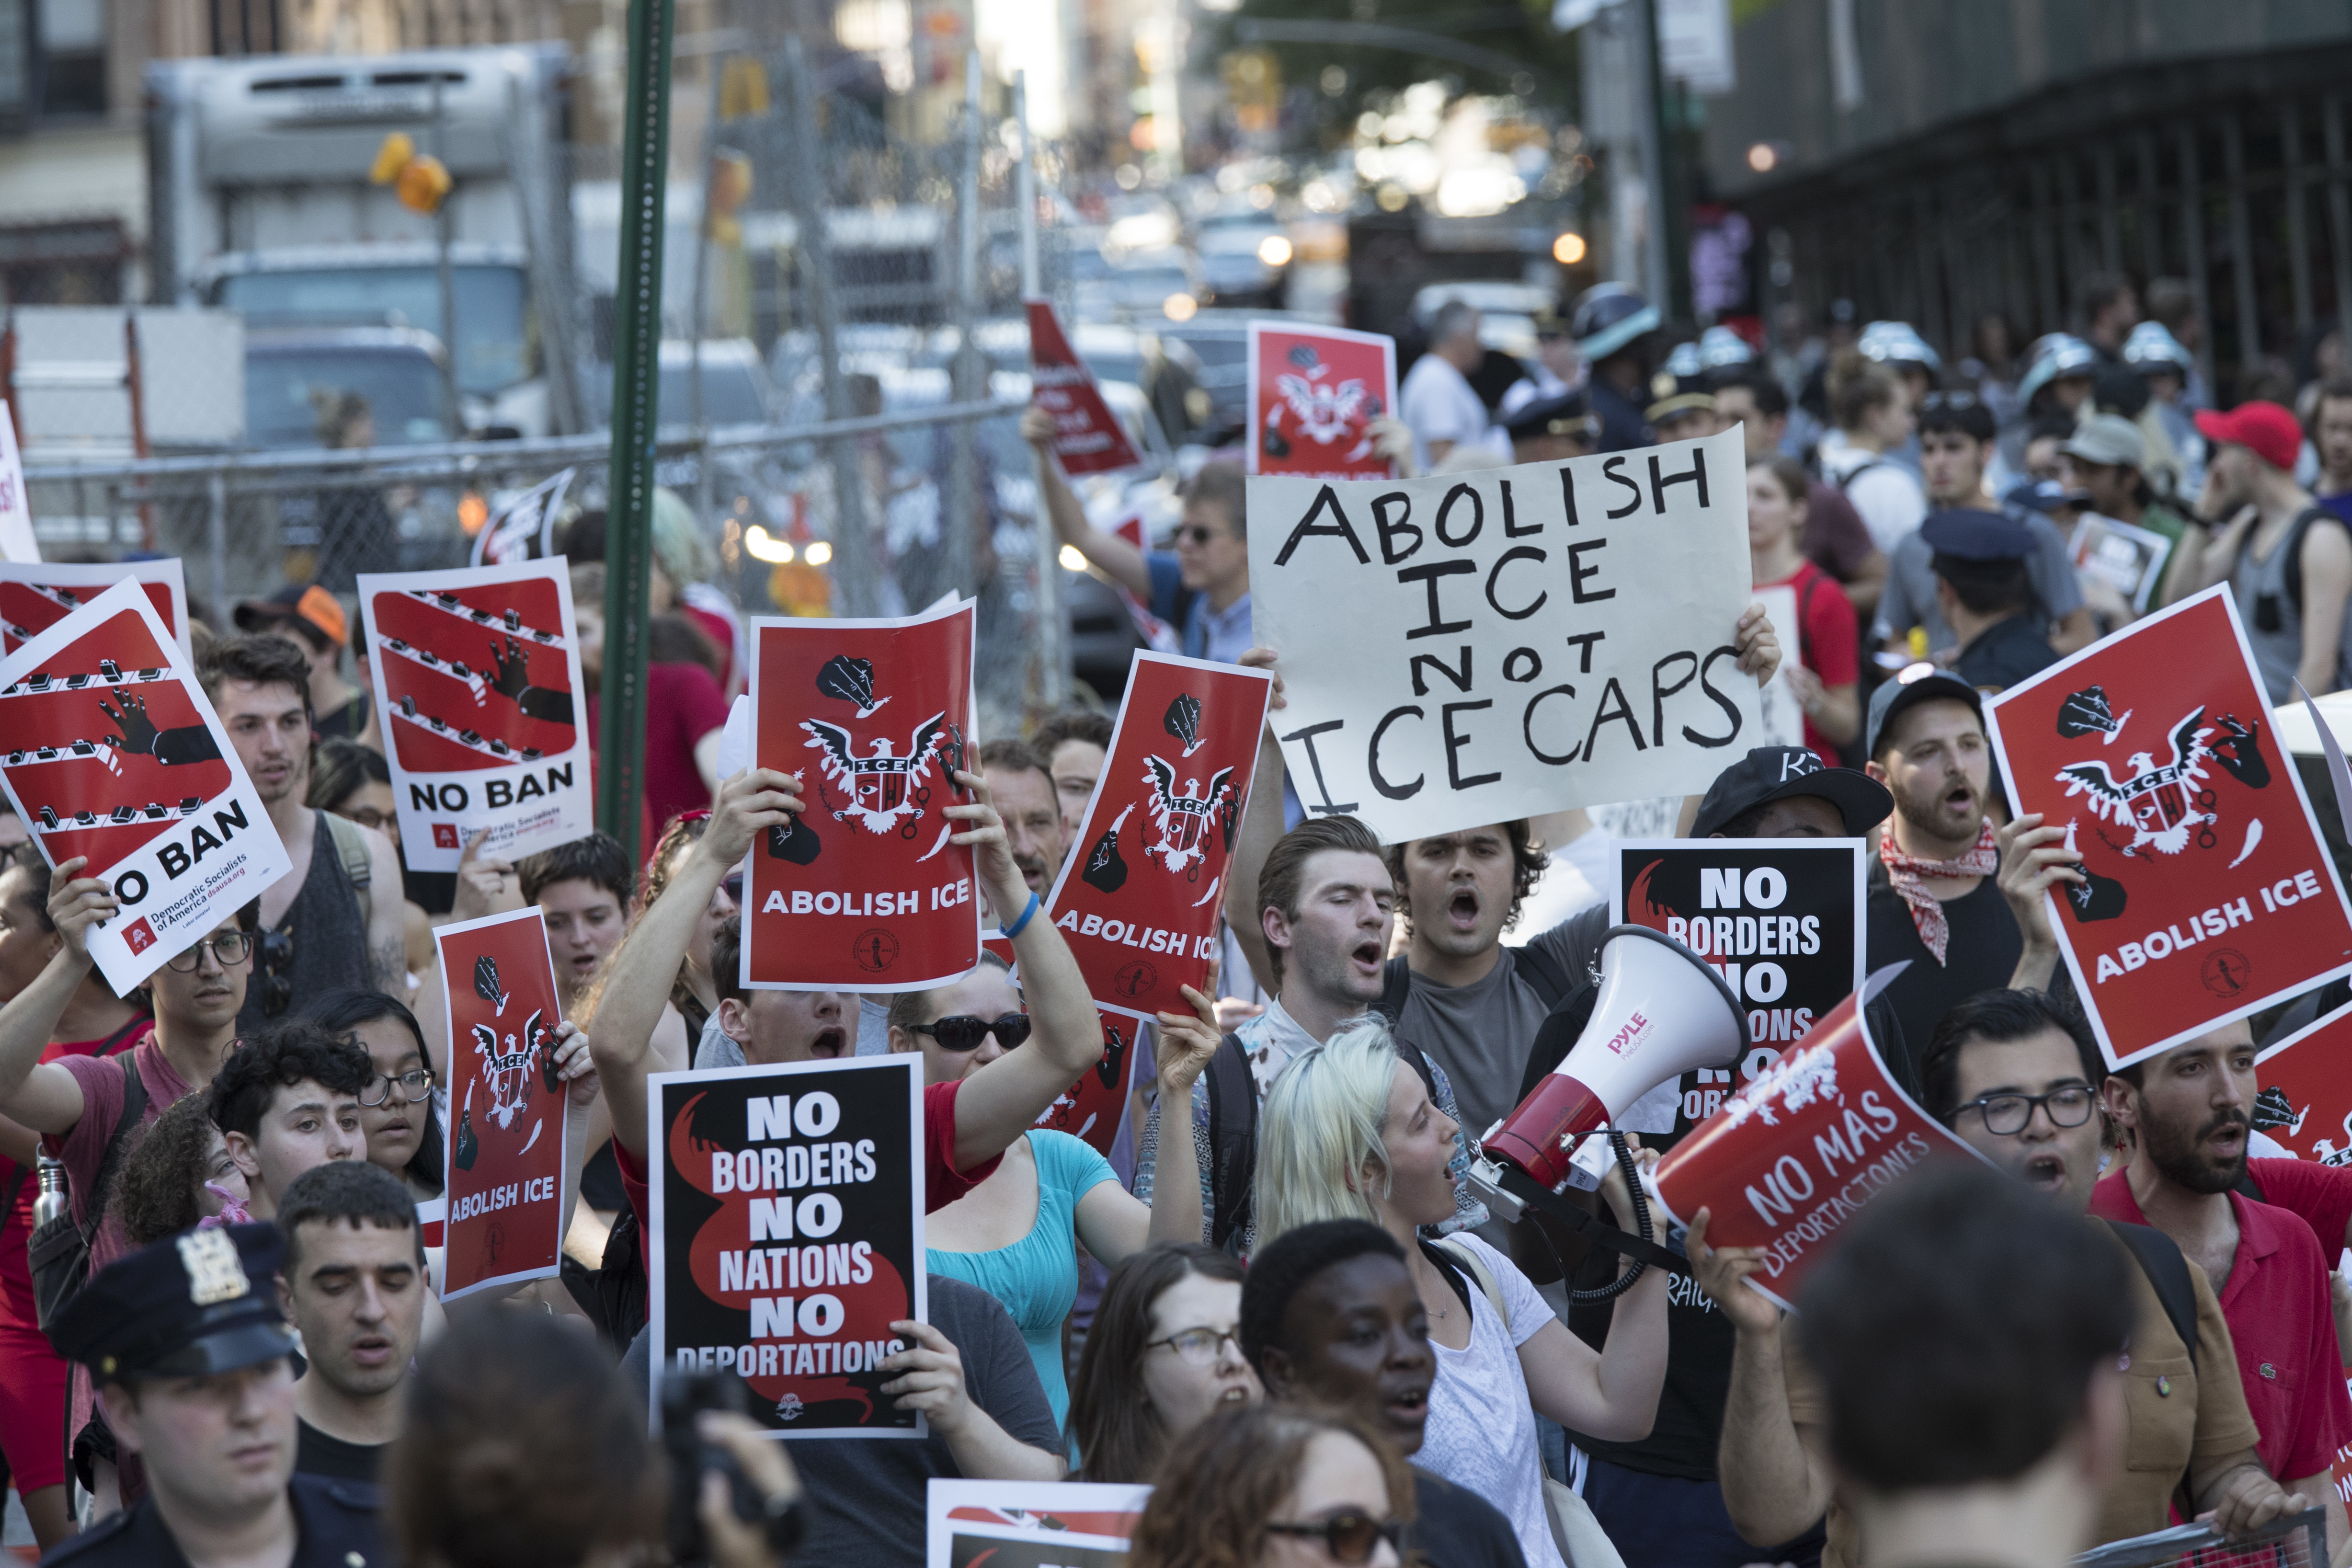 Protesters chant slogans as they march during a demonstration calling for the abolishment of Immigration and Customs Enforcement, or ICE, and demand changes in U.S. immigration policies, Friday, June 29, 2018, in New York.